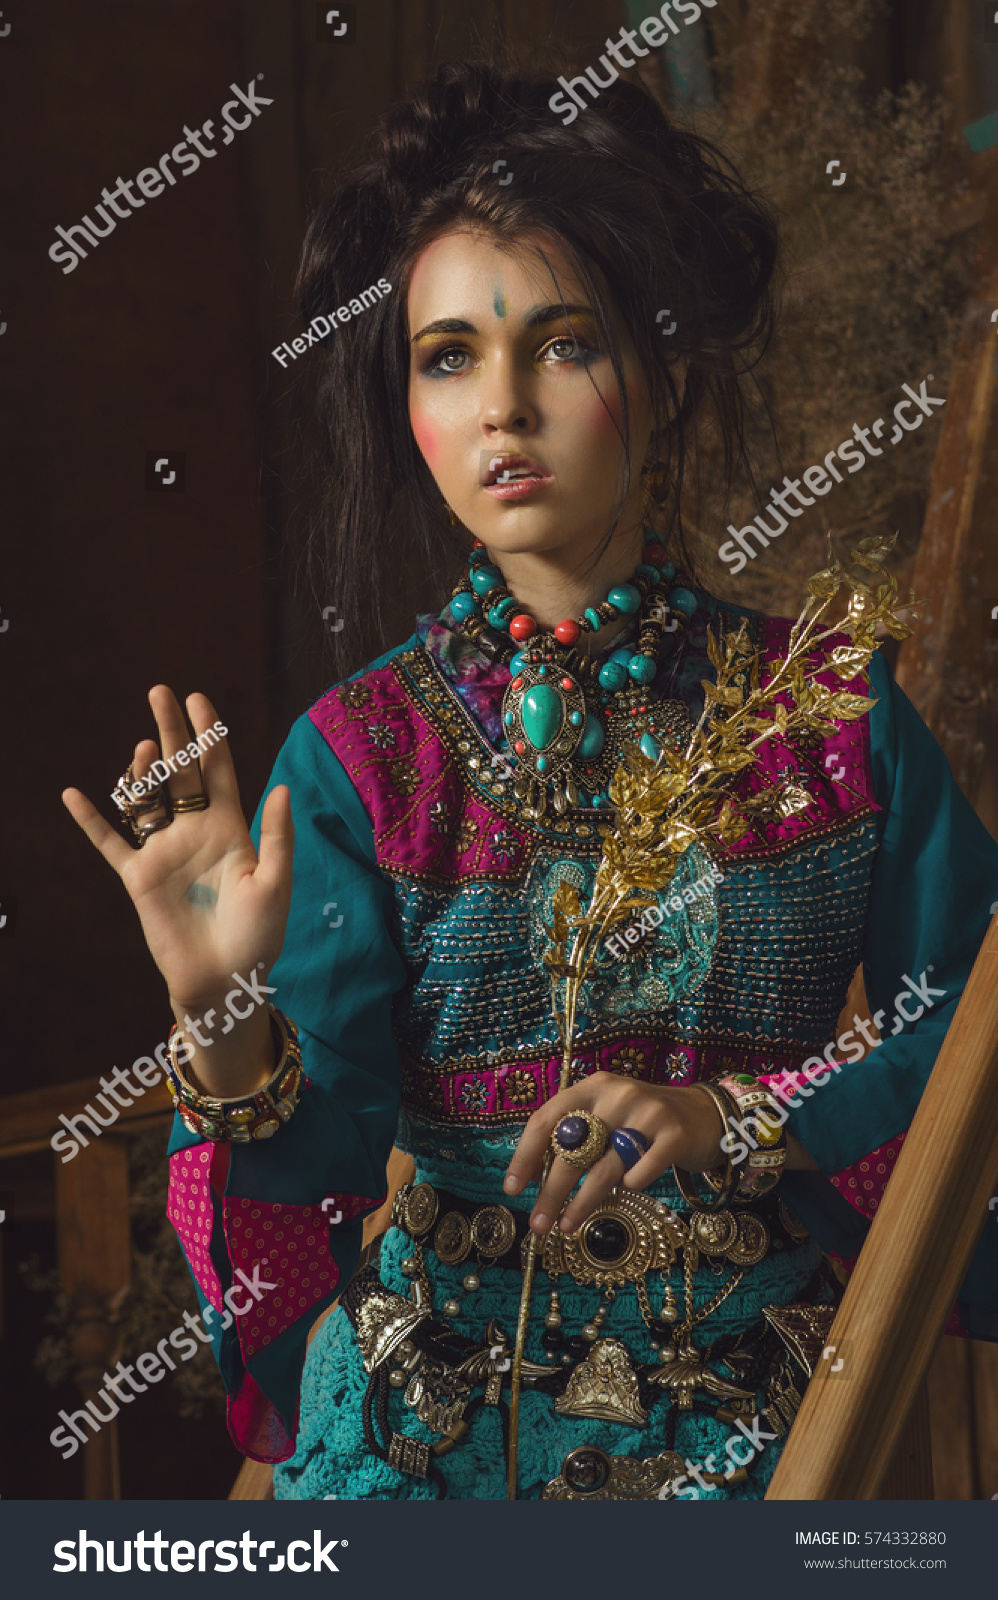 Stylized Vintage Portrait Young Woman Ethno Stock Photo ...